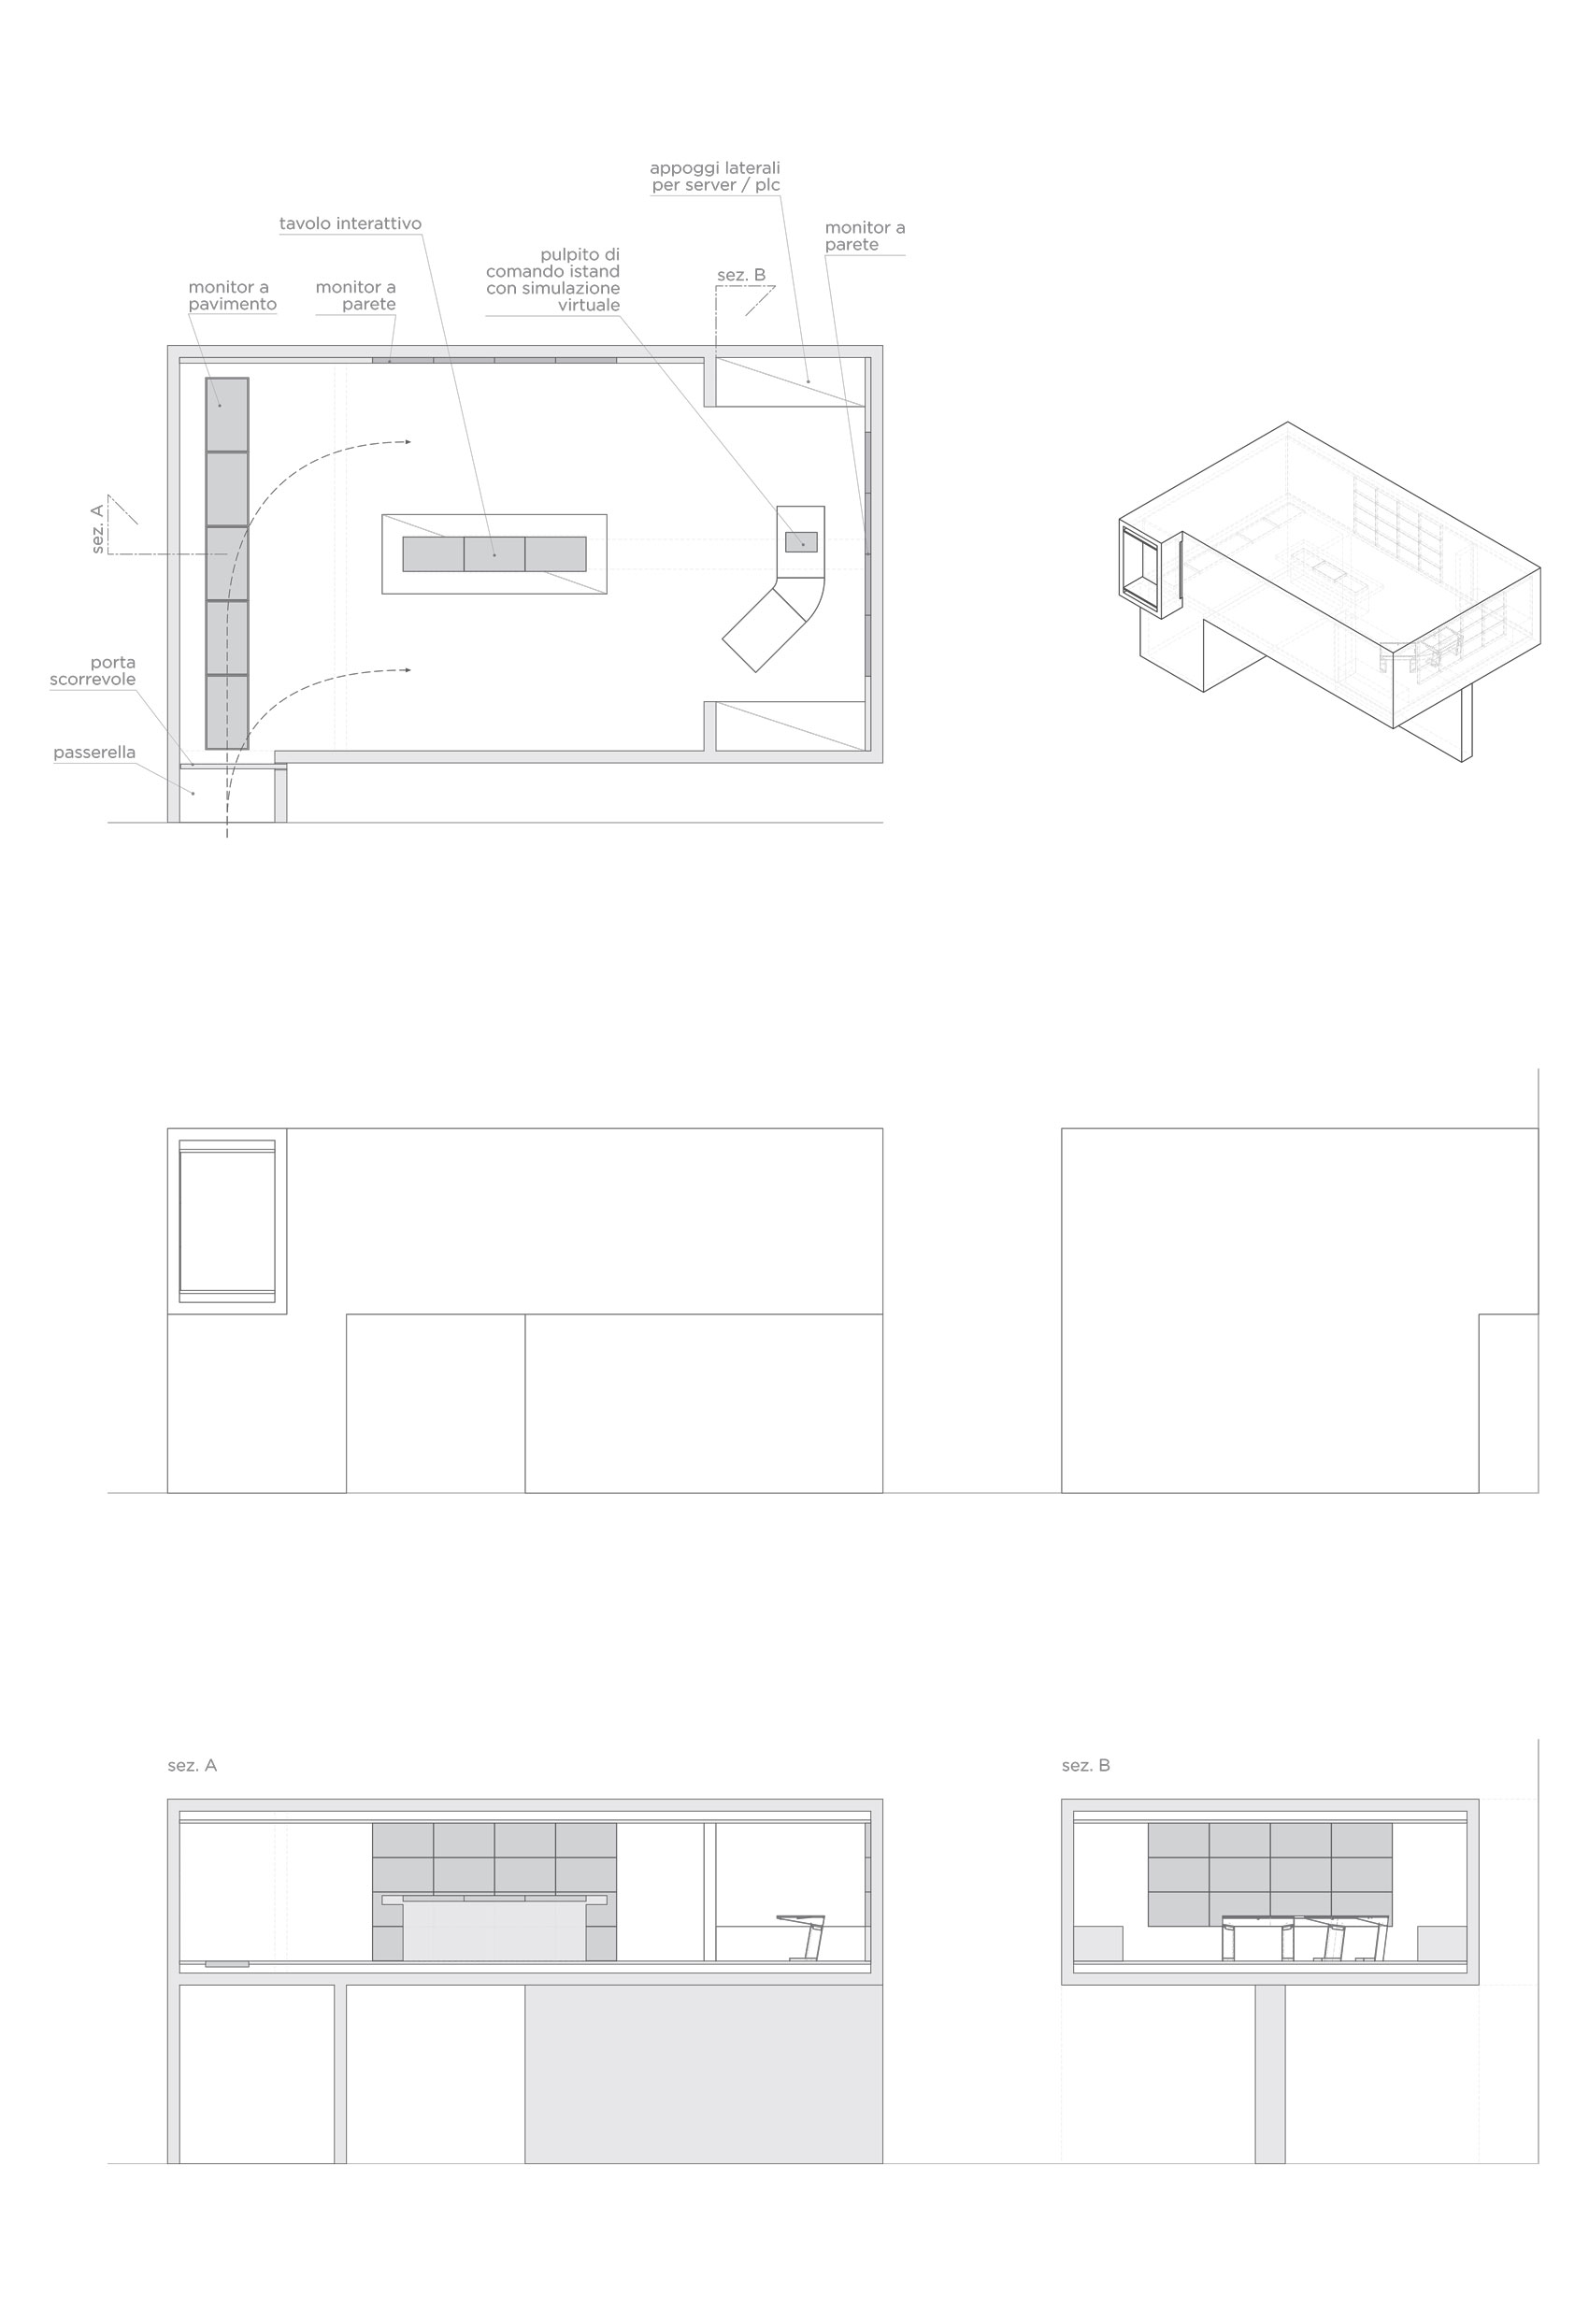 marco-zito-showroom-danieli-automation-drawing-01